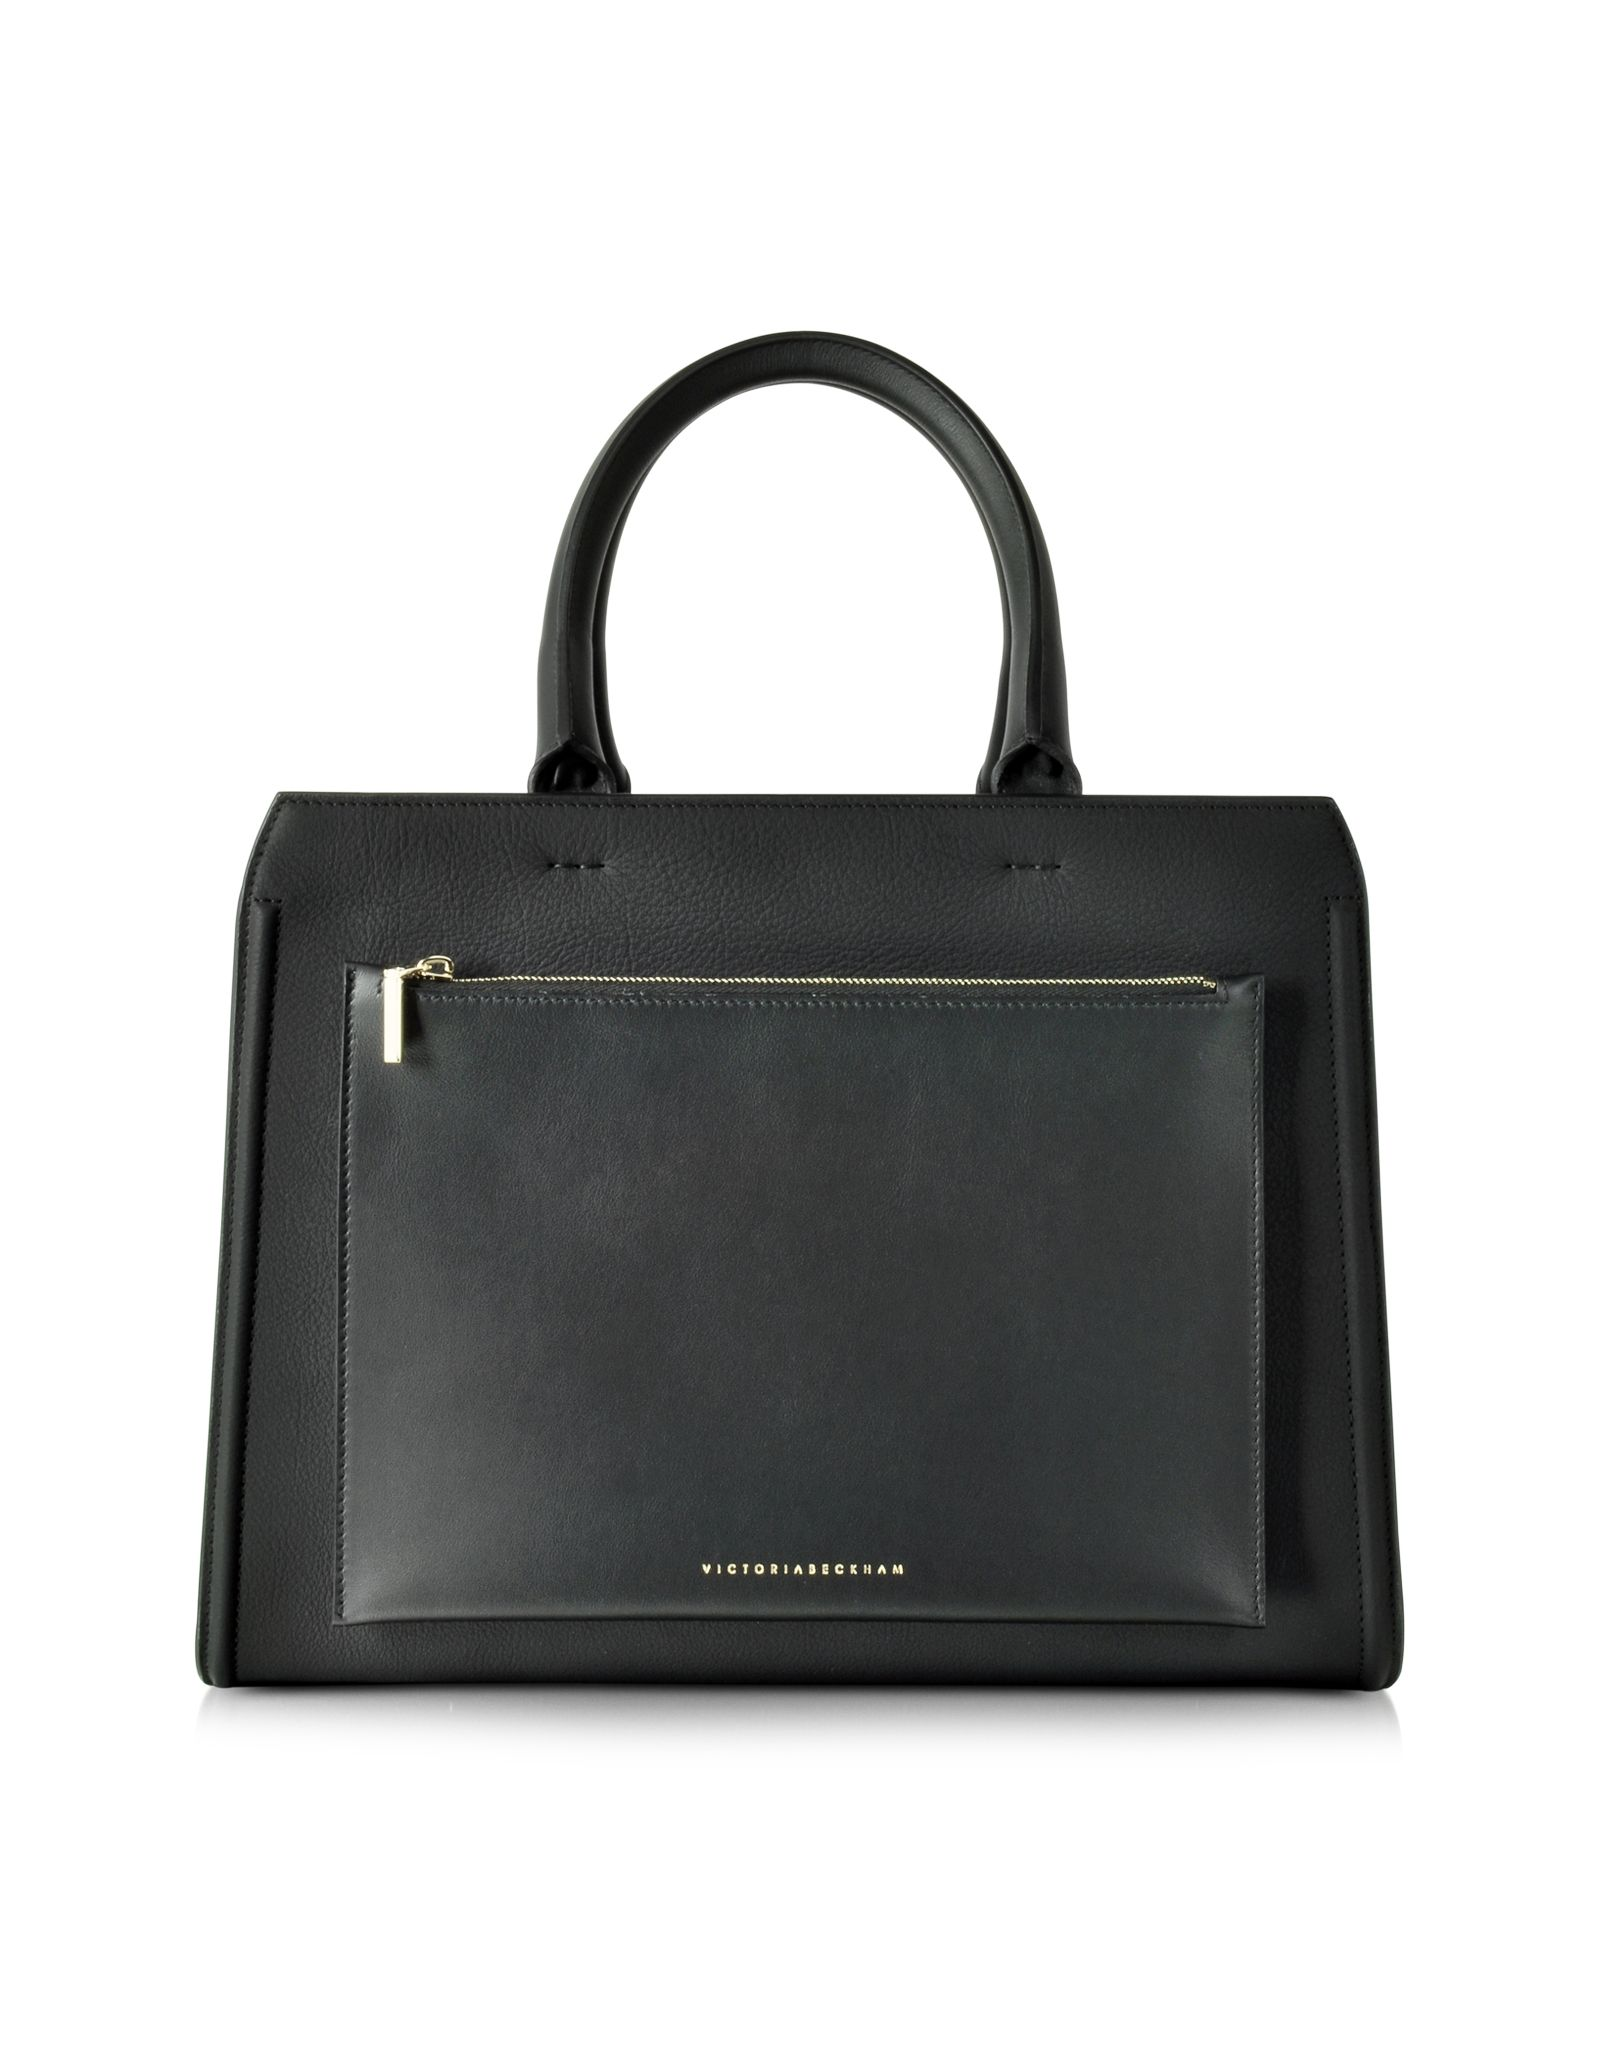 Black Leather City Victoria Bag crafted in handcrafted in buffalo leather, is a sophisticated vintage inspired structured bag with feminine appeal. Featuring double rolled handles, outer zip pocket, center zip divider pocket, detachable shoulder strap, internal large zip pocket and silver tone hardware detail. Signature dust bag included. Made in Italy.